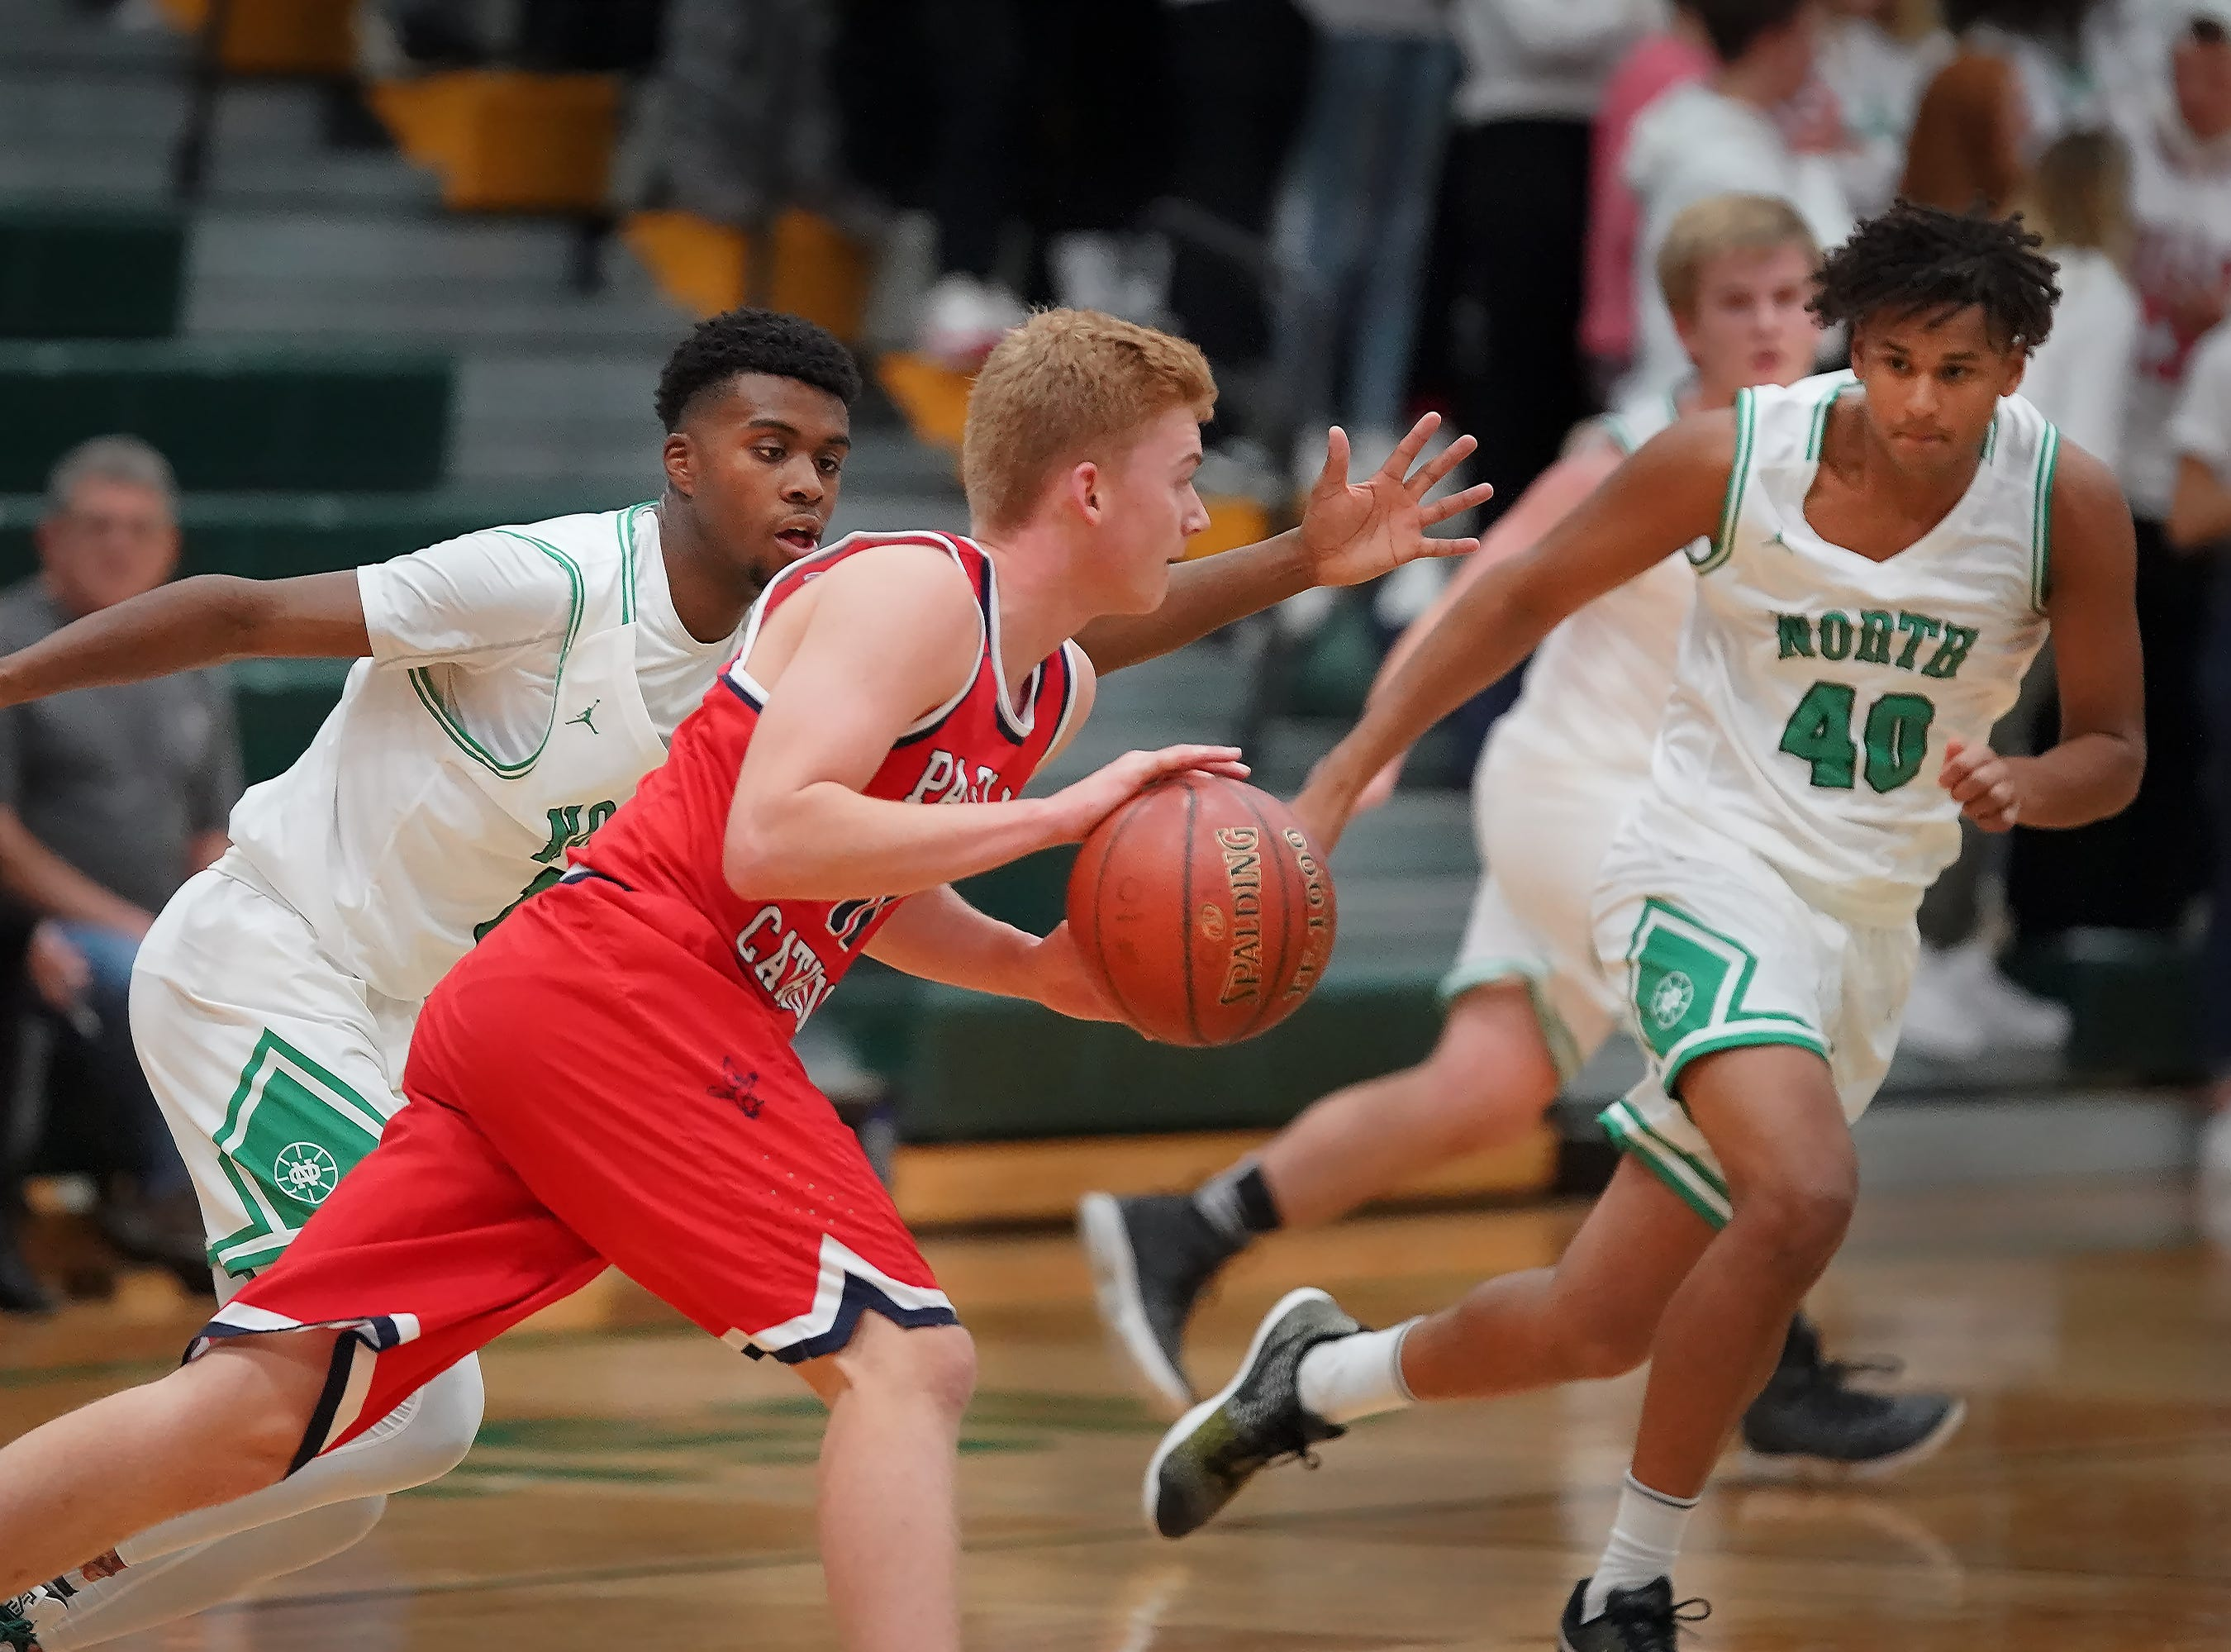 Nate Helms (10) of Pacelli moves the ball down court. The Oshkosh North Spartans hosted the Stevens Point Pacelli Catholic Cardinals in the Friday night game of the Fox River Brewing Thanksgiving Classic Tournament.